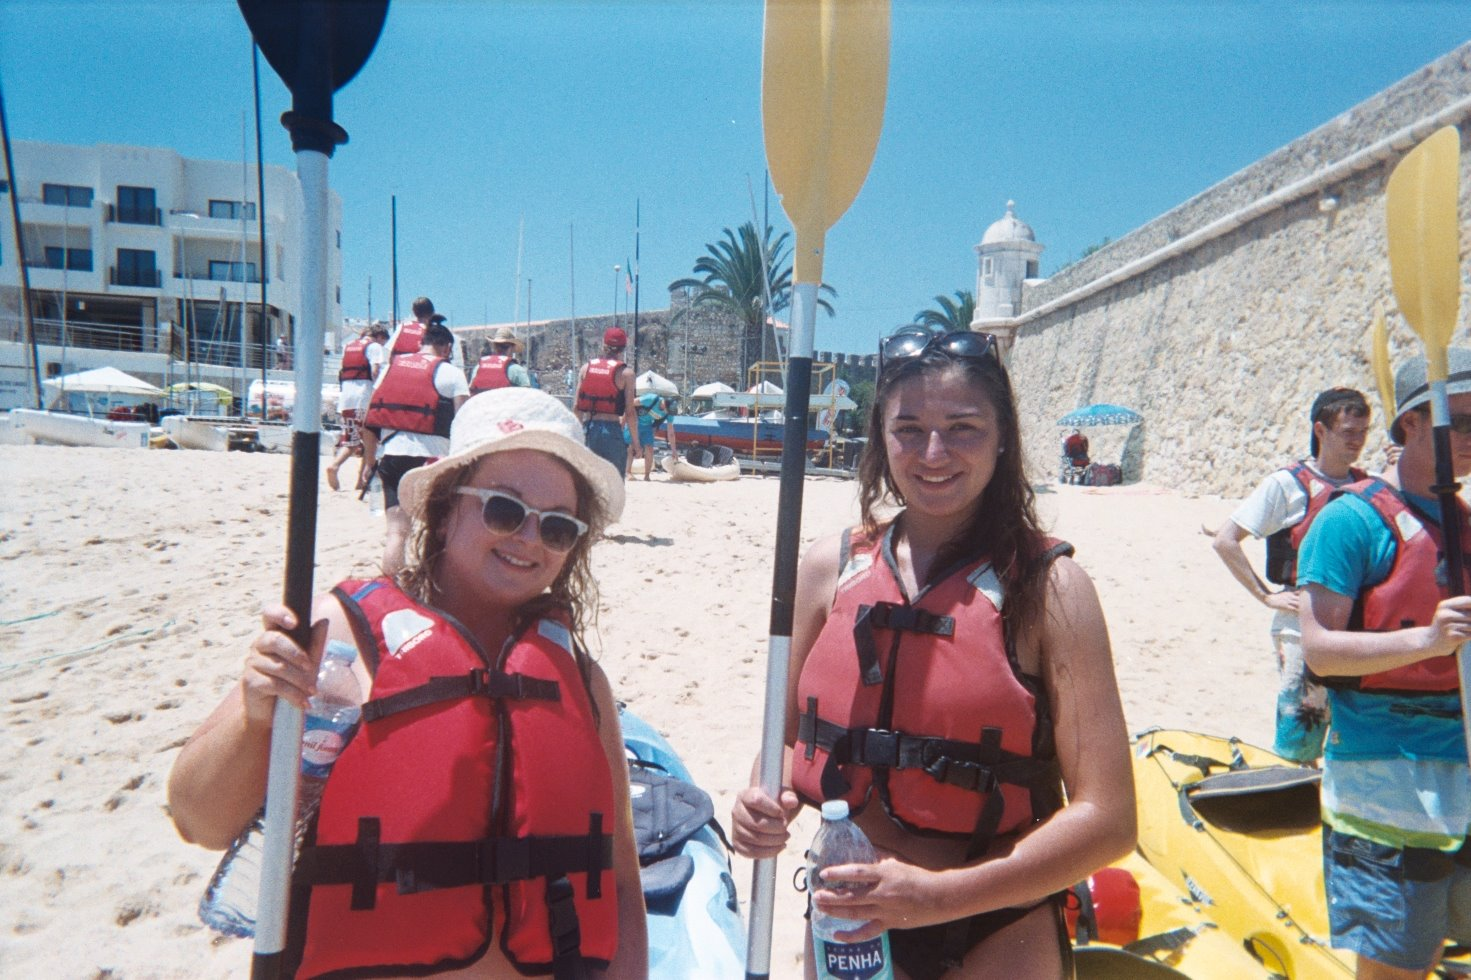 Holding our paddles, about to go kayaking in Lagos in the Algarve, Portugal